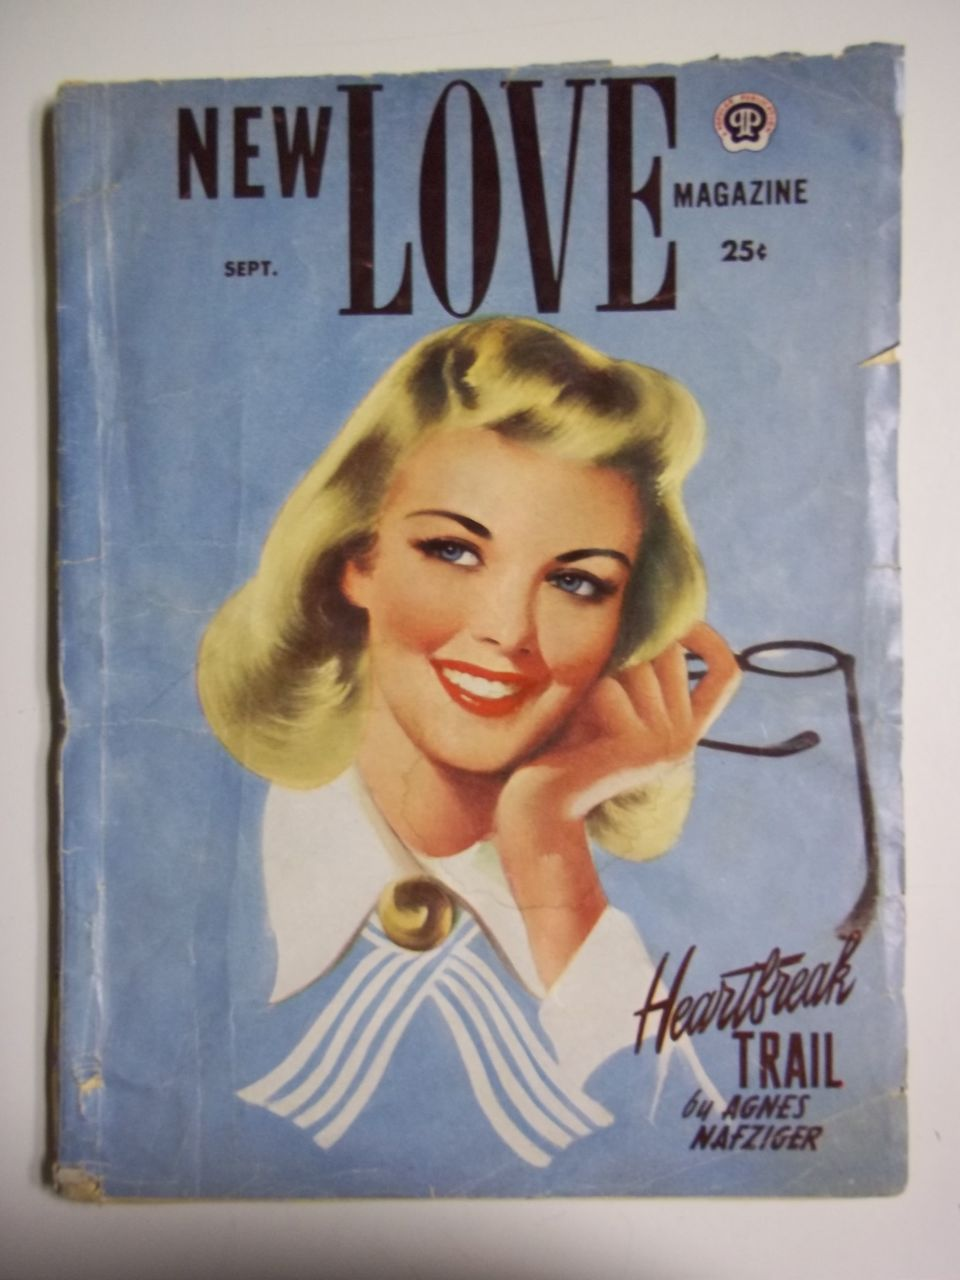 New Love Magazine No. 1, Vol. 33, Sept. 1953